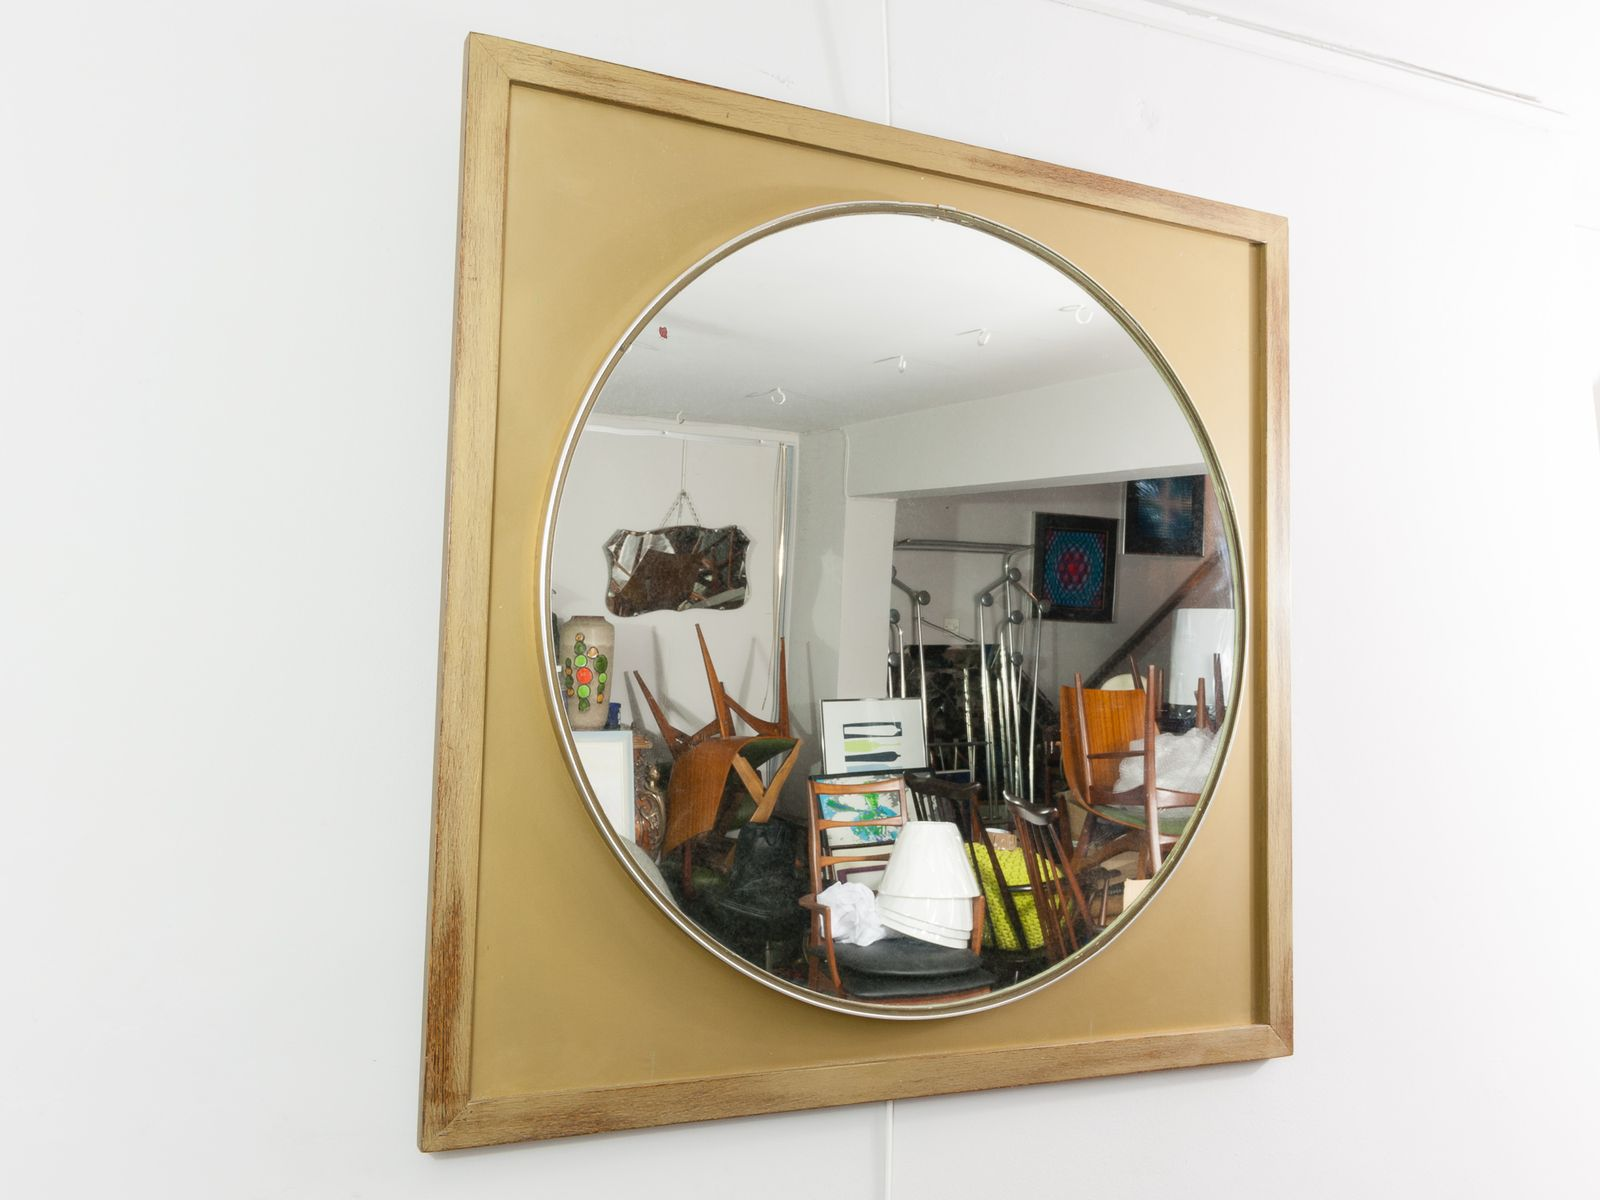 Vintage large round mirror with a gold wooden frame for for Large round mirrors for sale